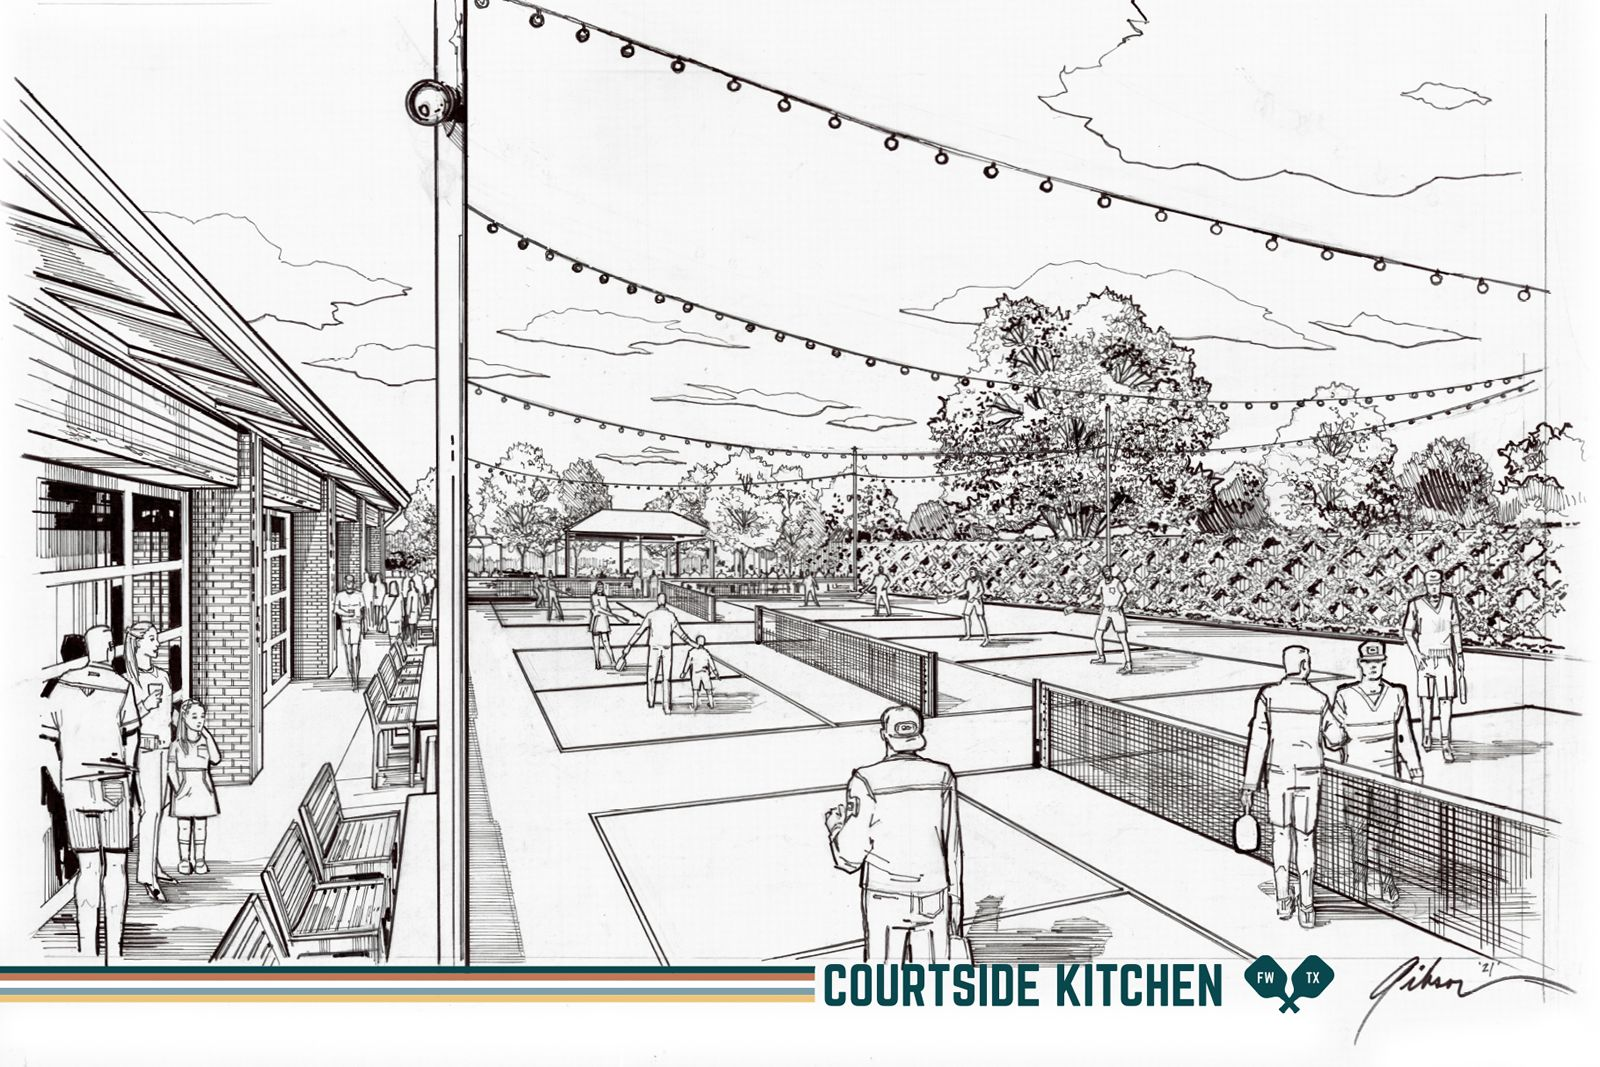 Courtside Kitchen, A New Food & Pickleball Concept, To Debut Summer 2021 in Fort Worth